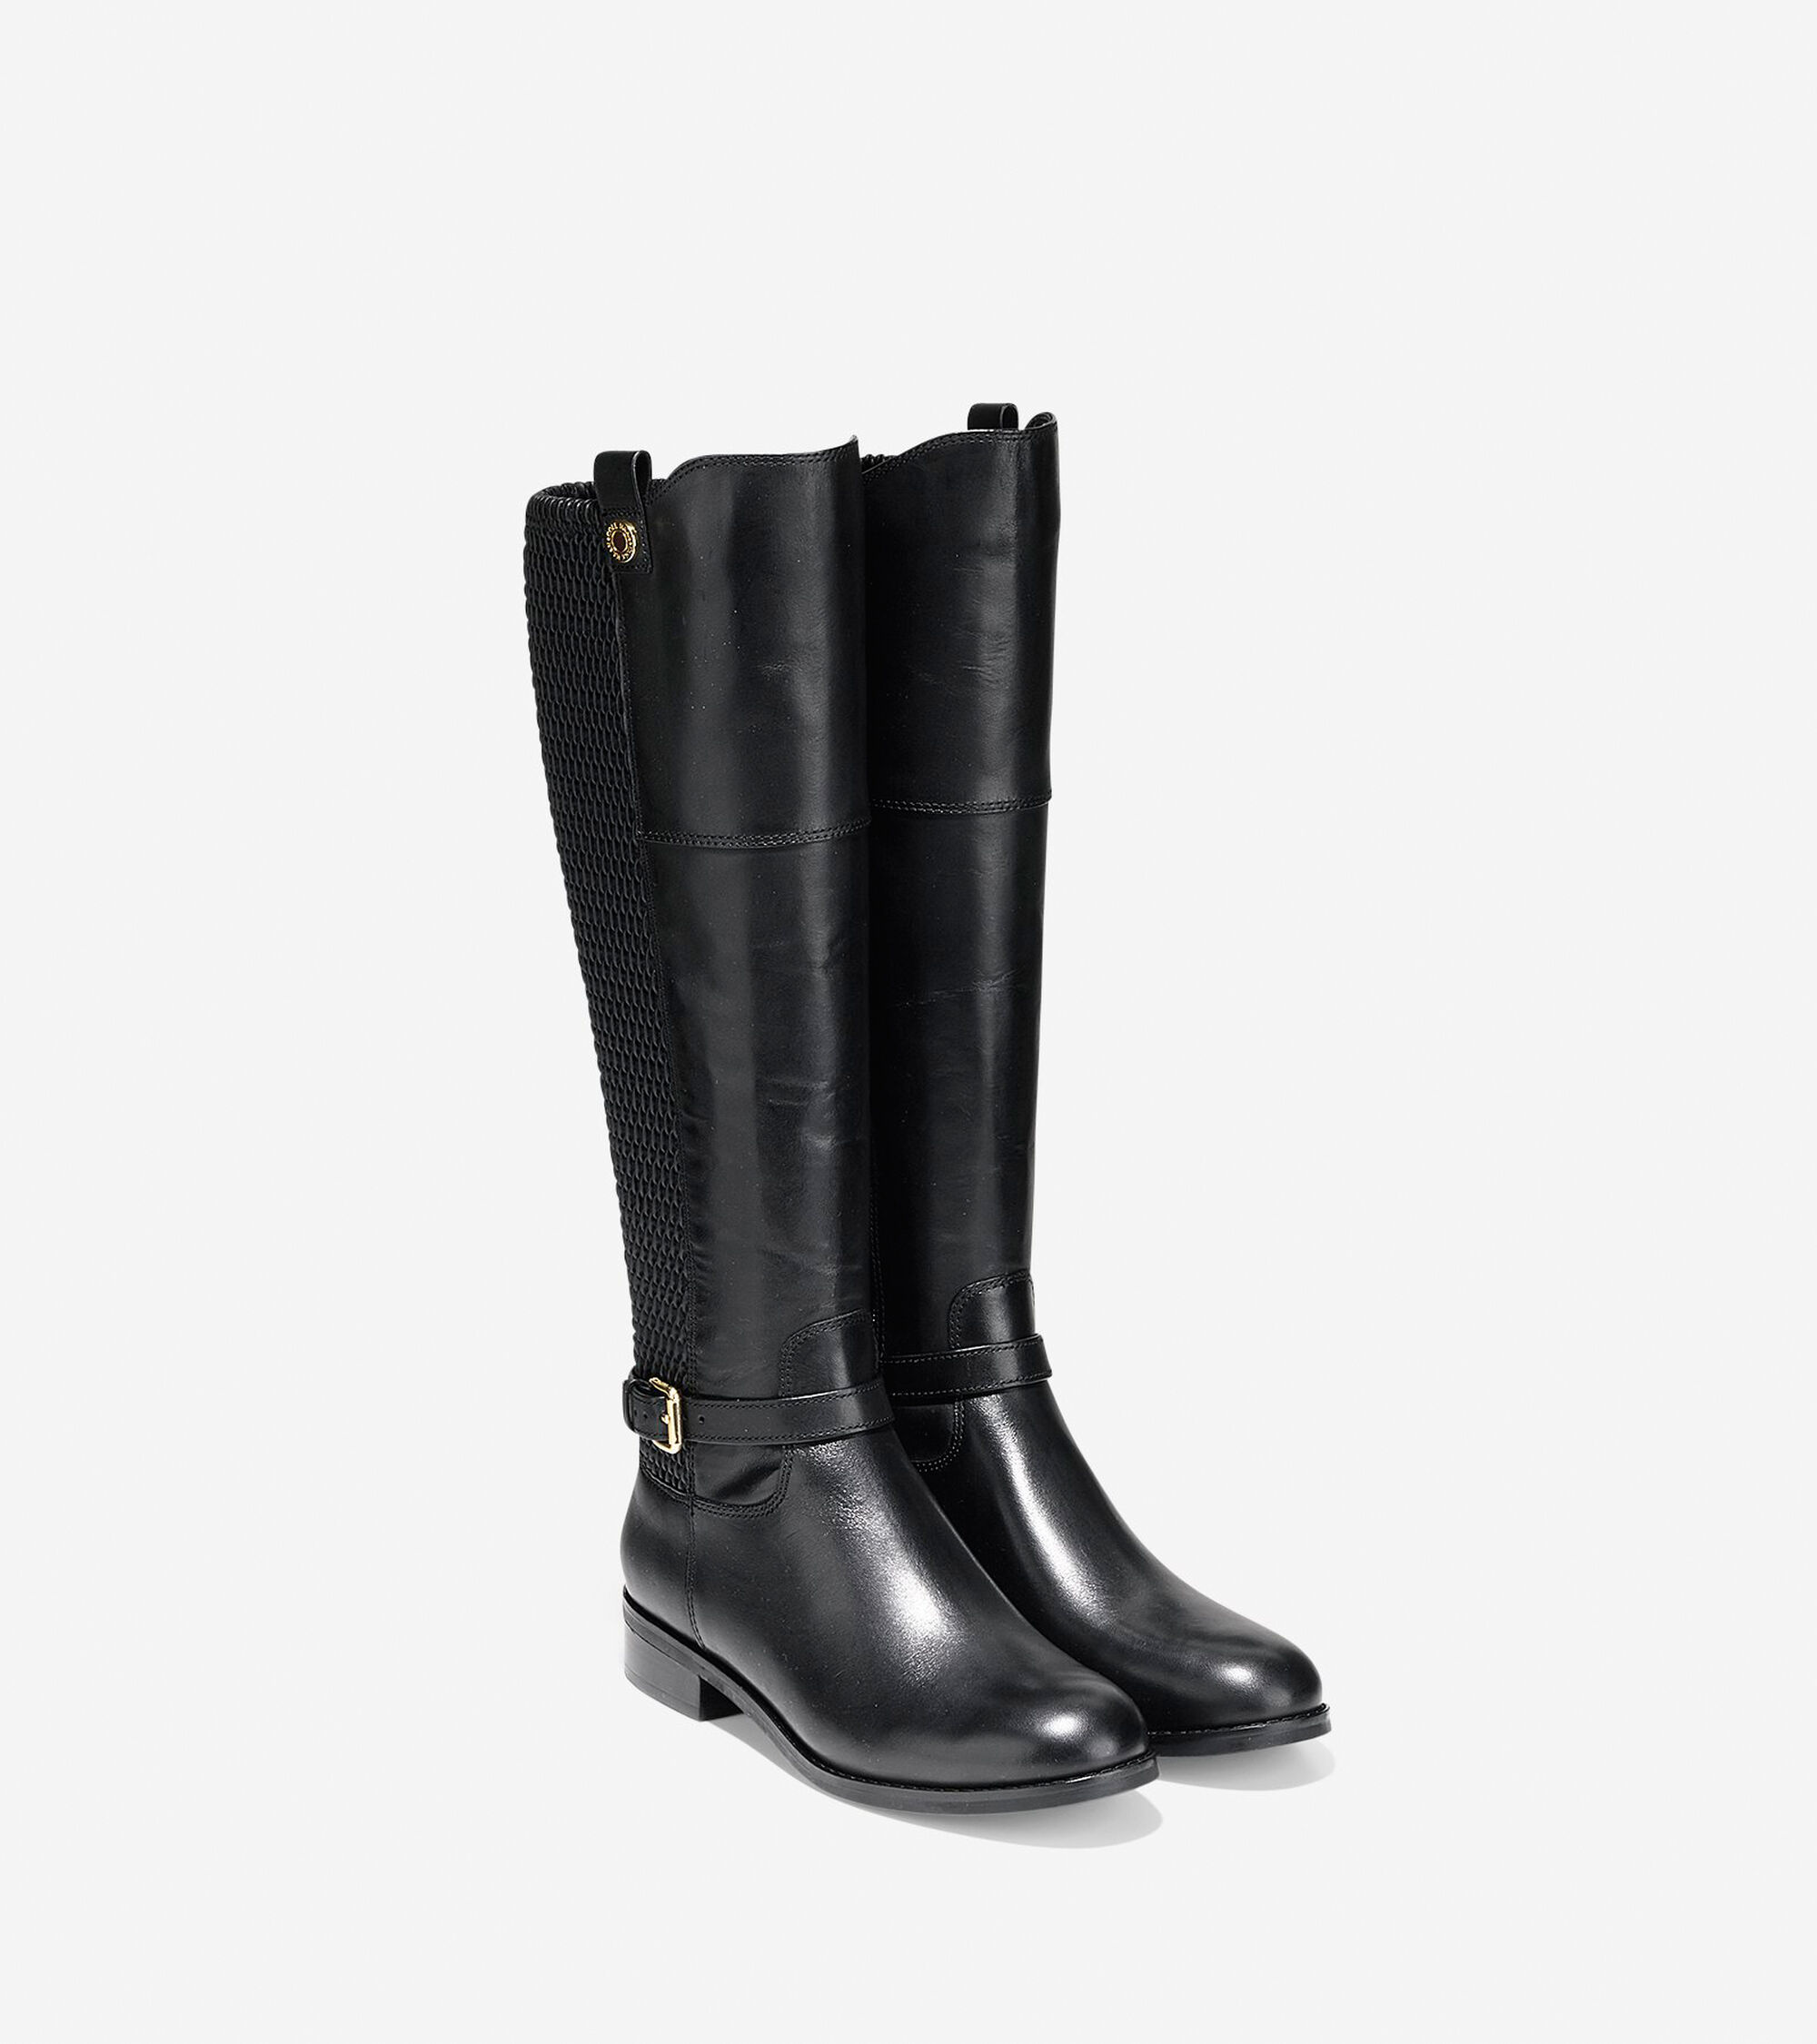 66d89fa5112 Women s Galina Boots in Black Leather